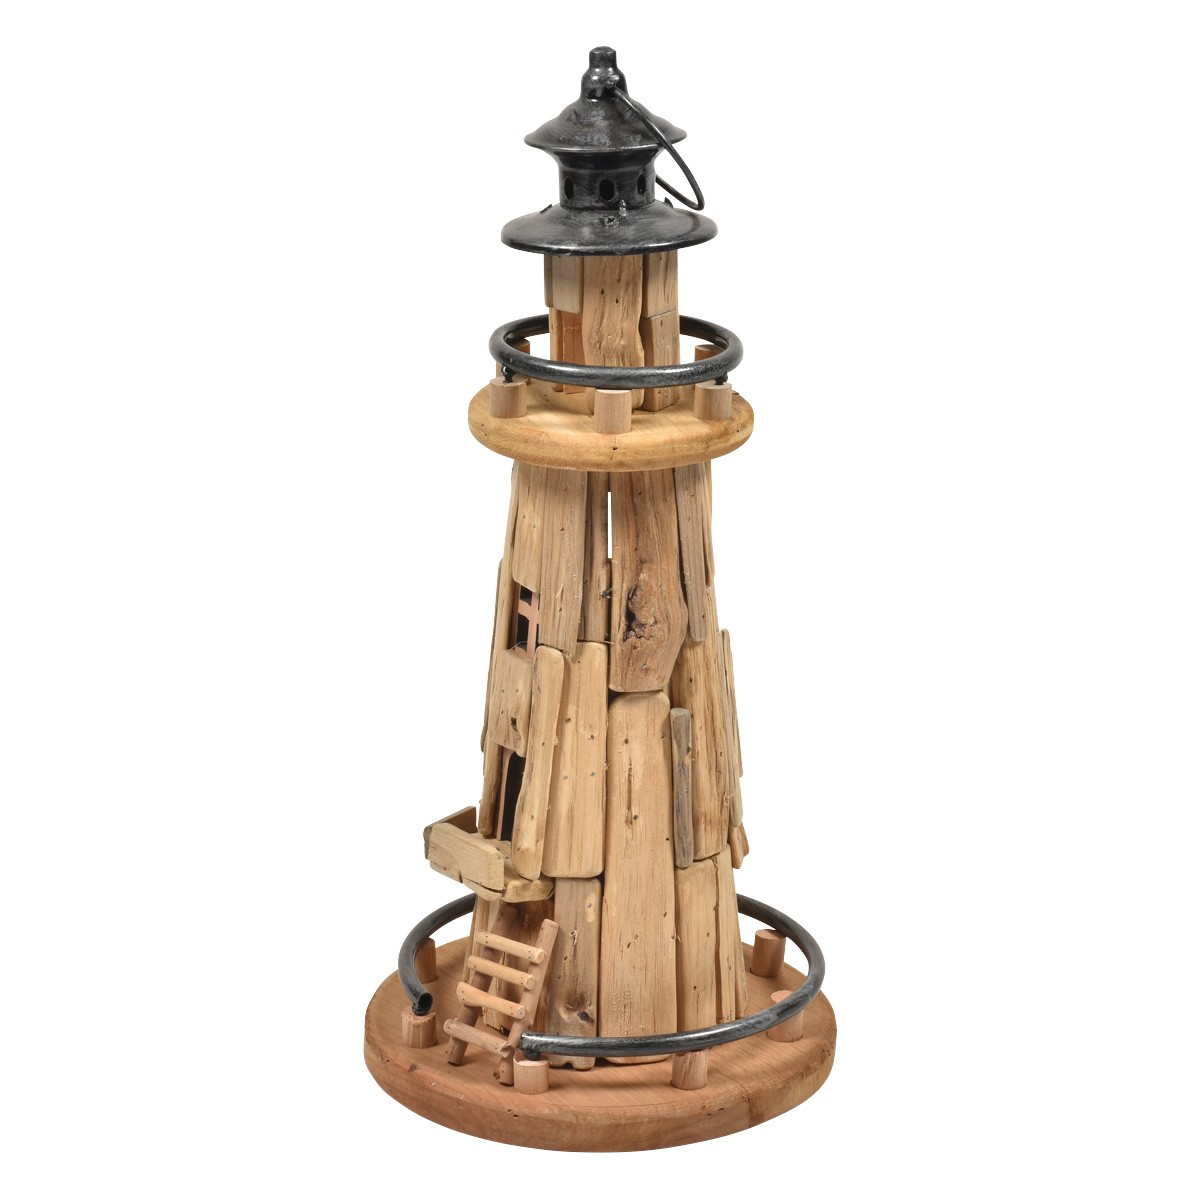 Amador Drfitwood Lighthouse Sculpture